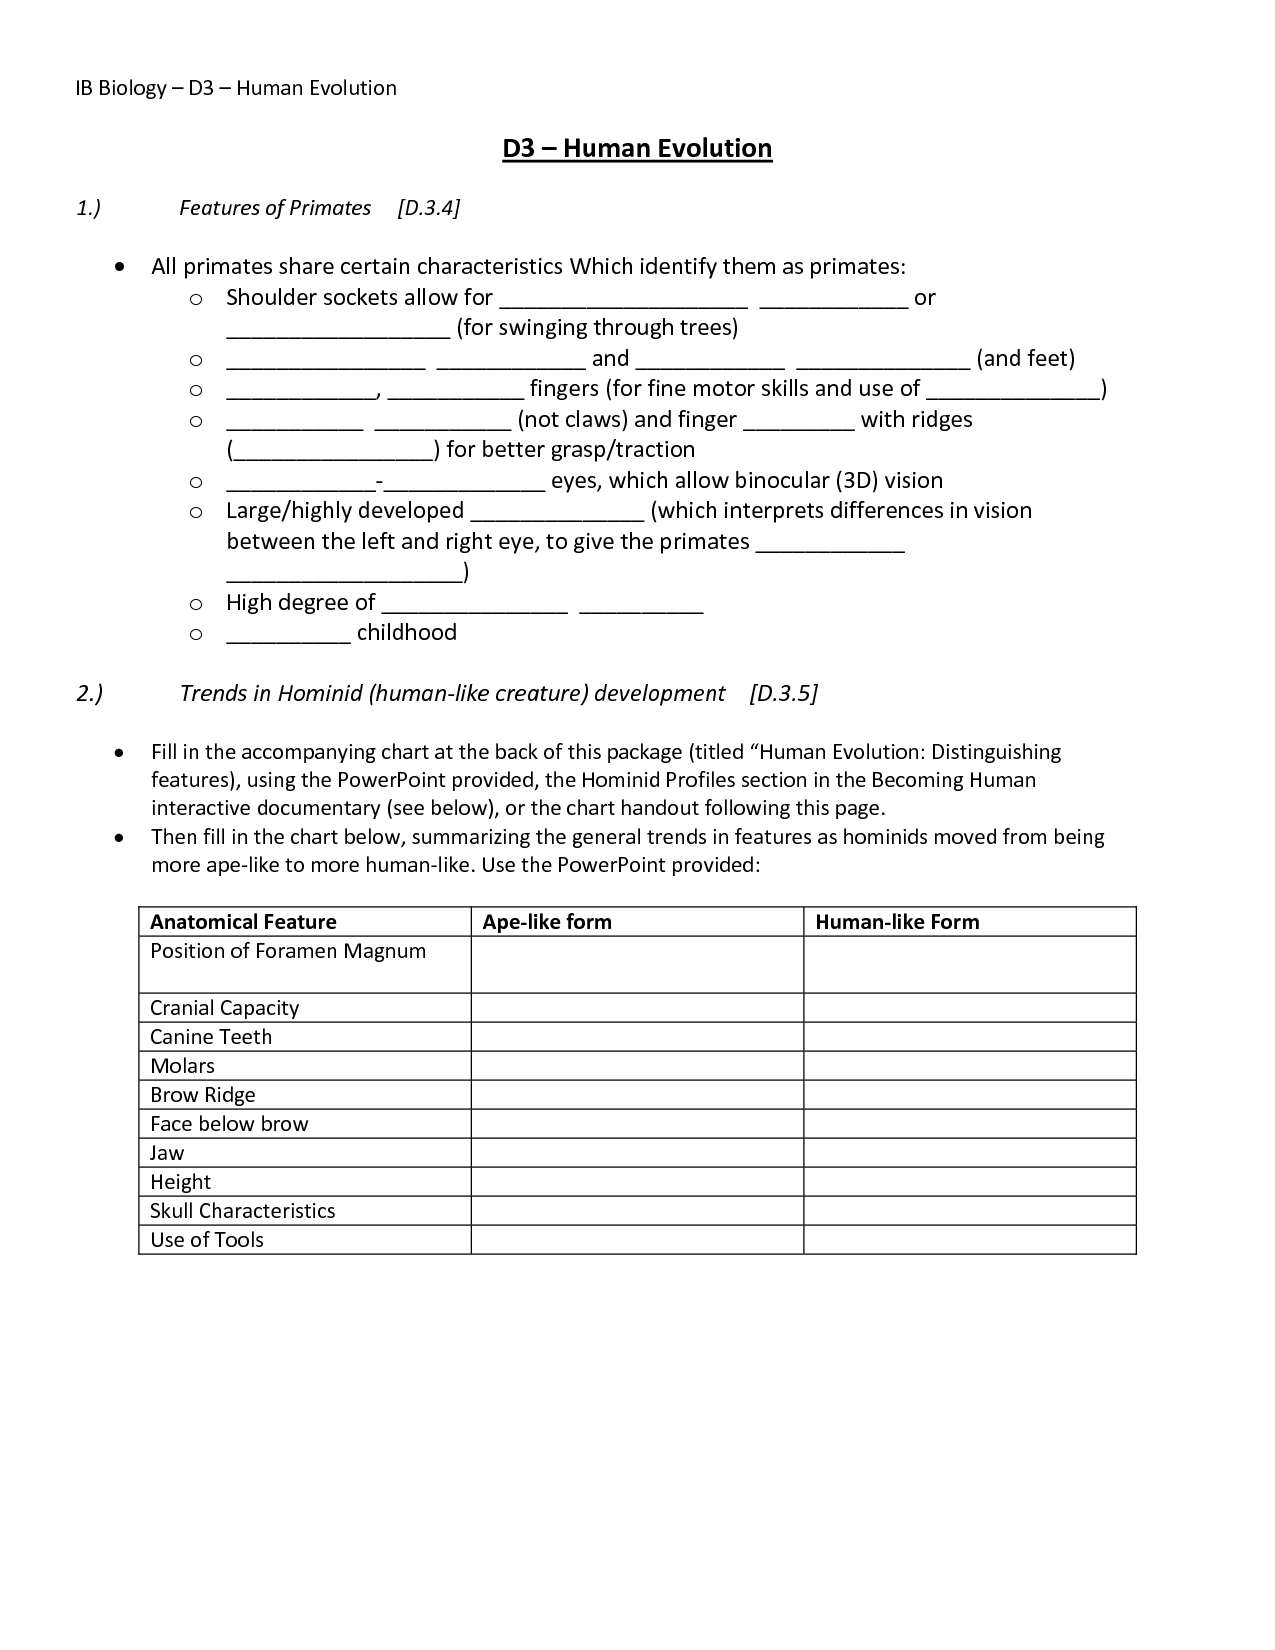 19 Best Images of Mutations Worksheet Key  DNA Mutations Practice Worksheet Answer Key